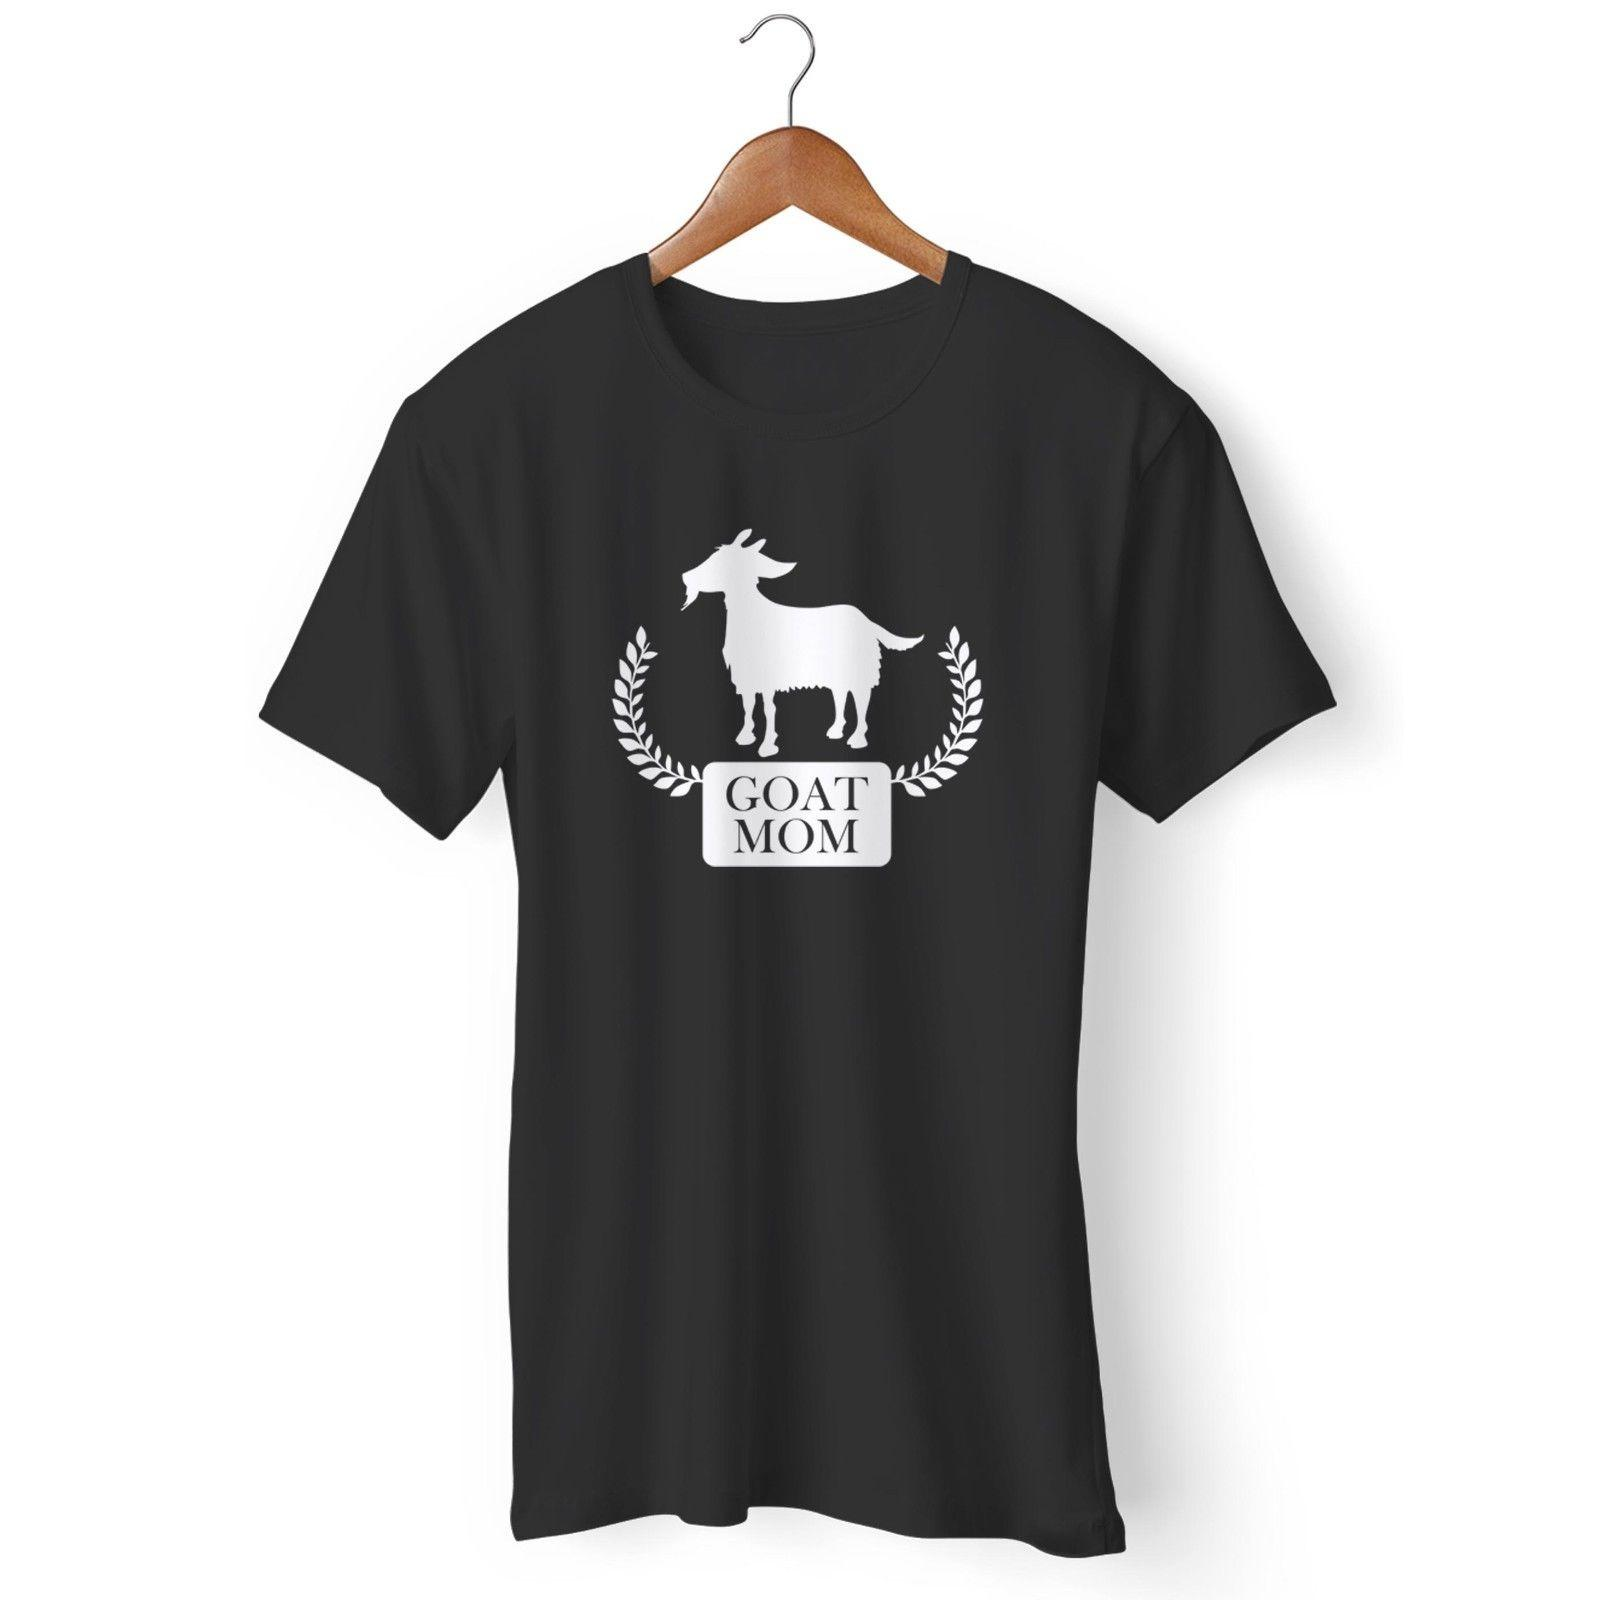 4bacd1e1d Goat Mom FUN Crazy Goat Tee Goat Lovers Man'S / Woman'S T Shirt Summer Hot  Sale ,New Tee Print ,Men T Shirt Top , Designer Shirts White Shirts From ...